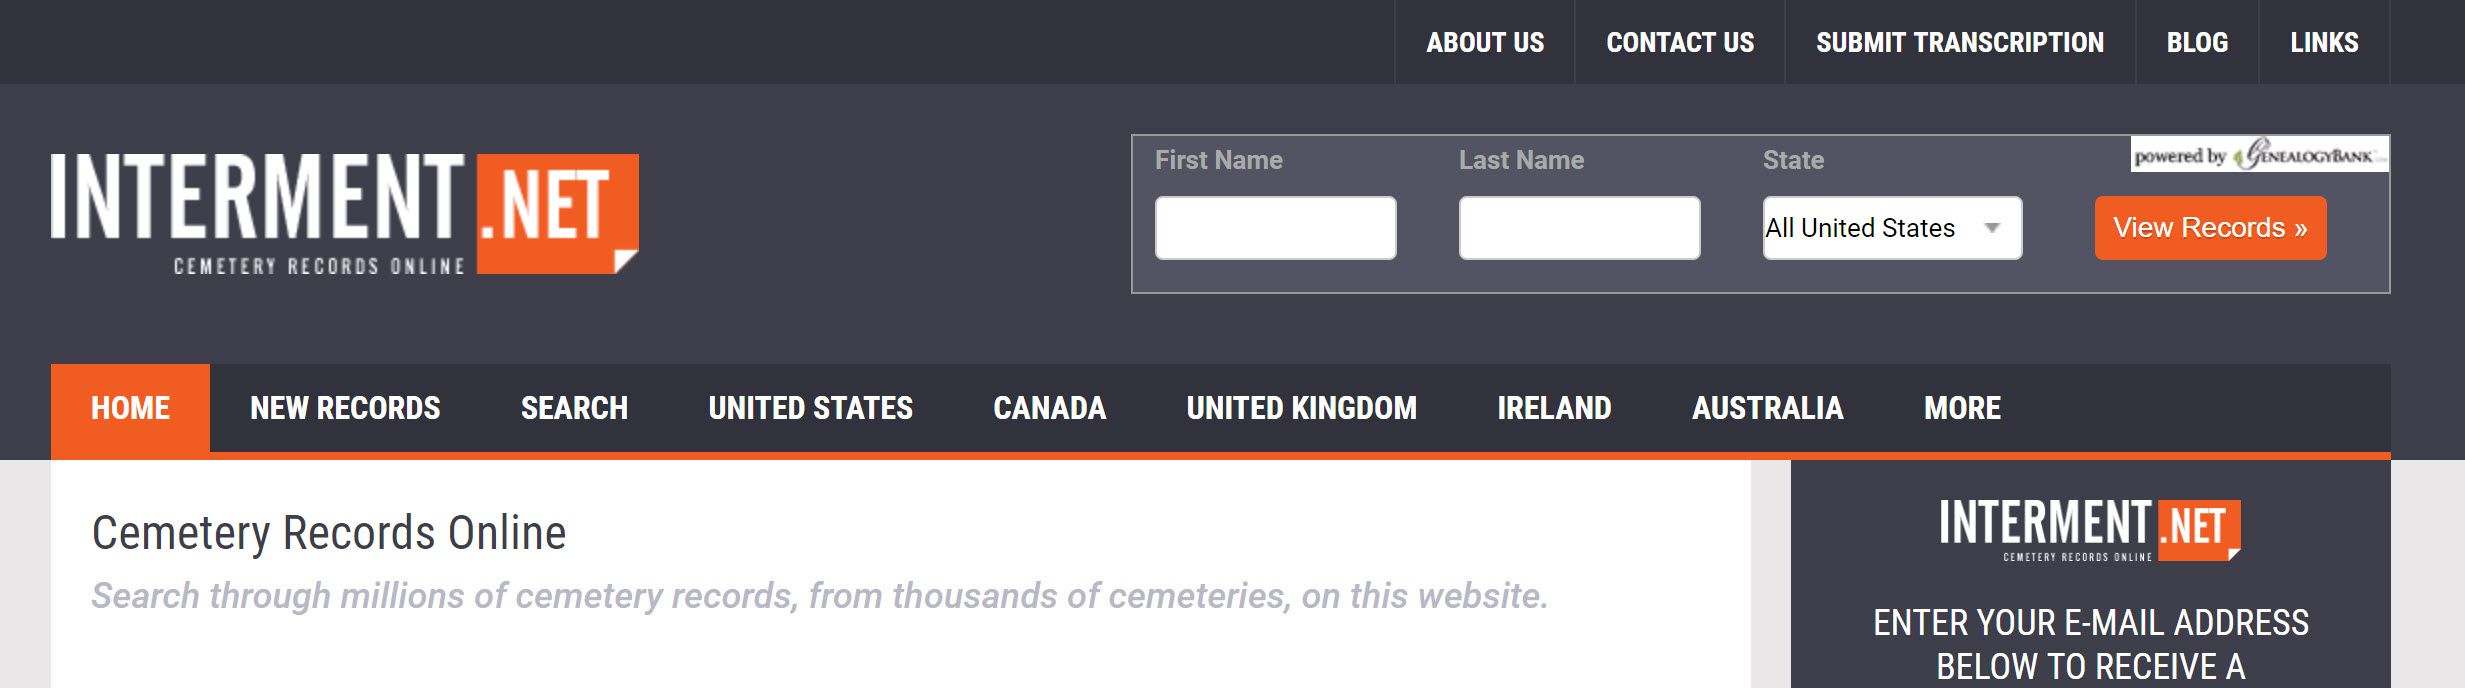 Screenshot from the Interment.net website.